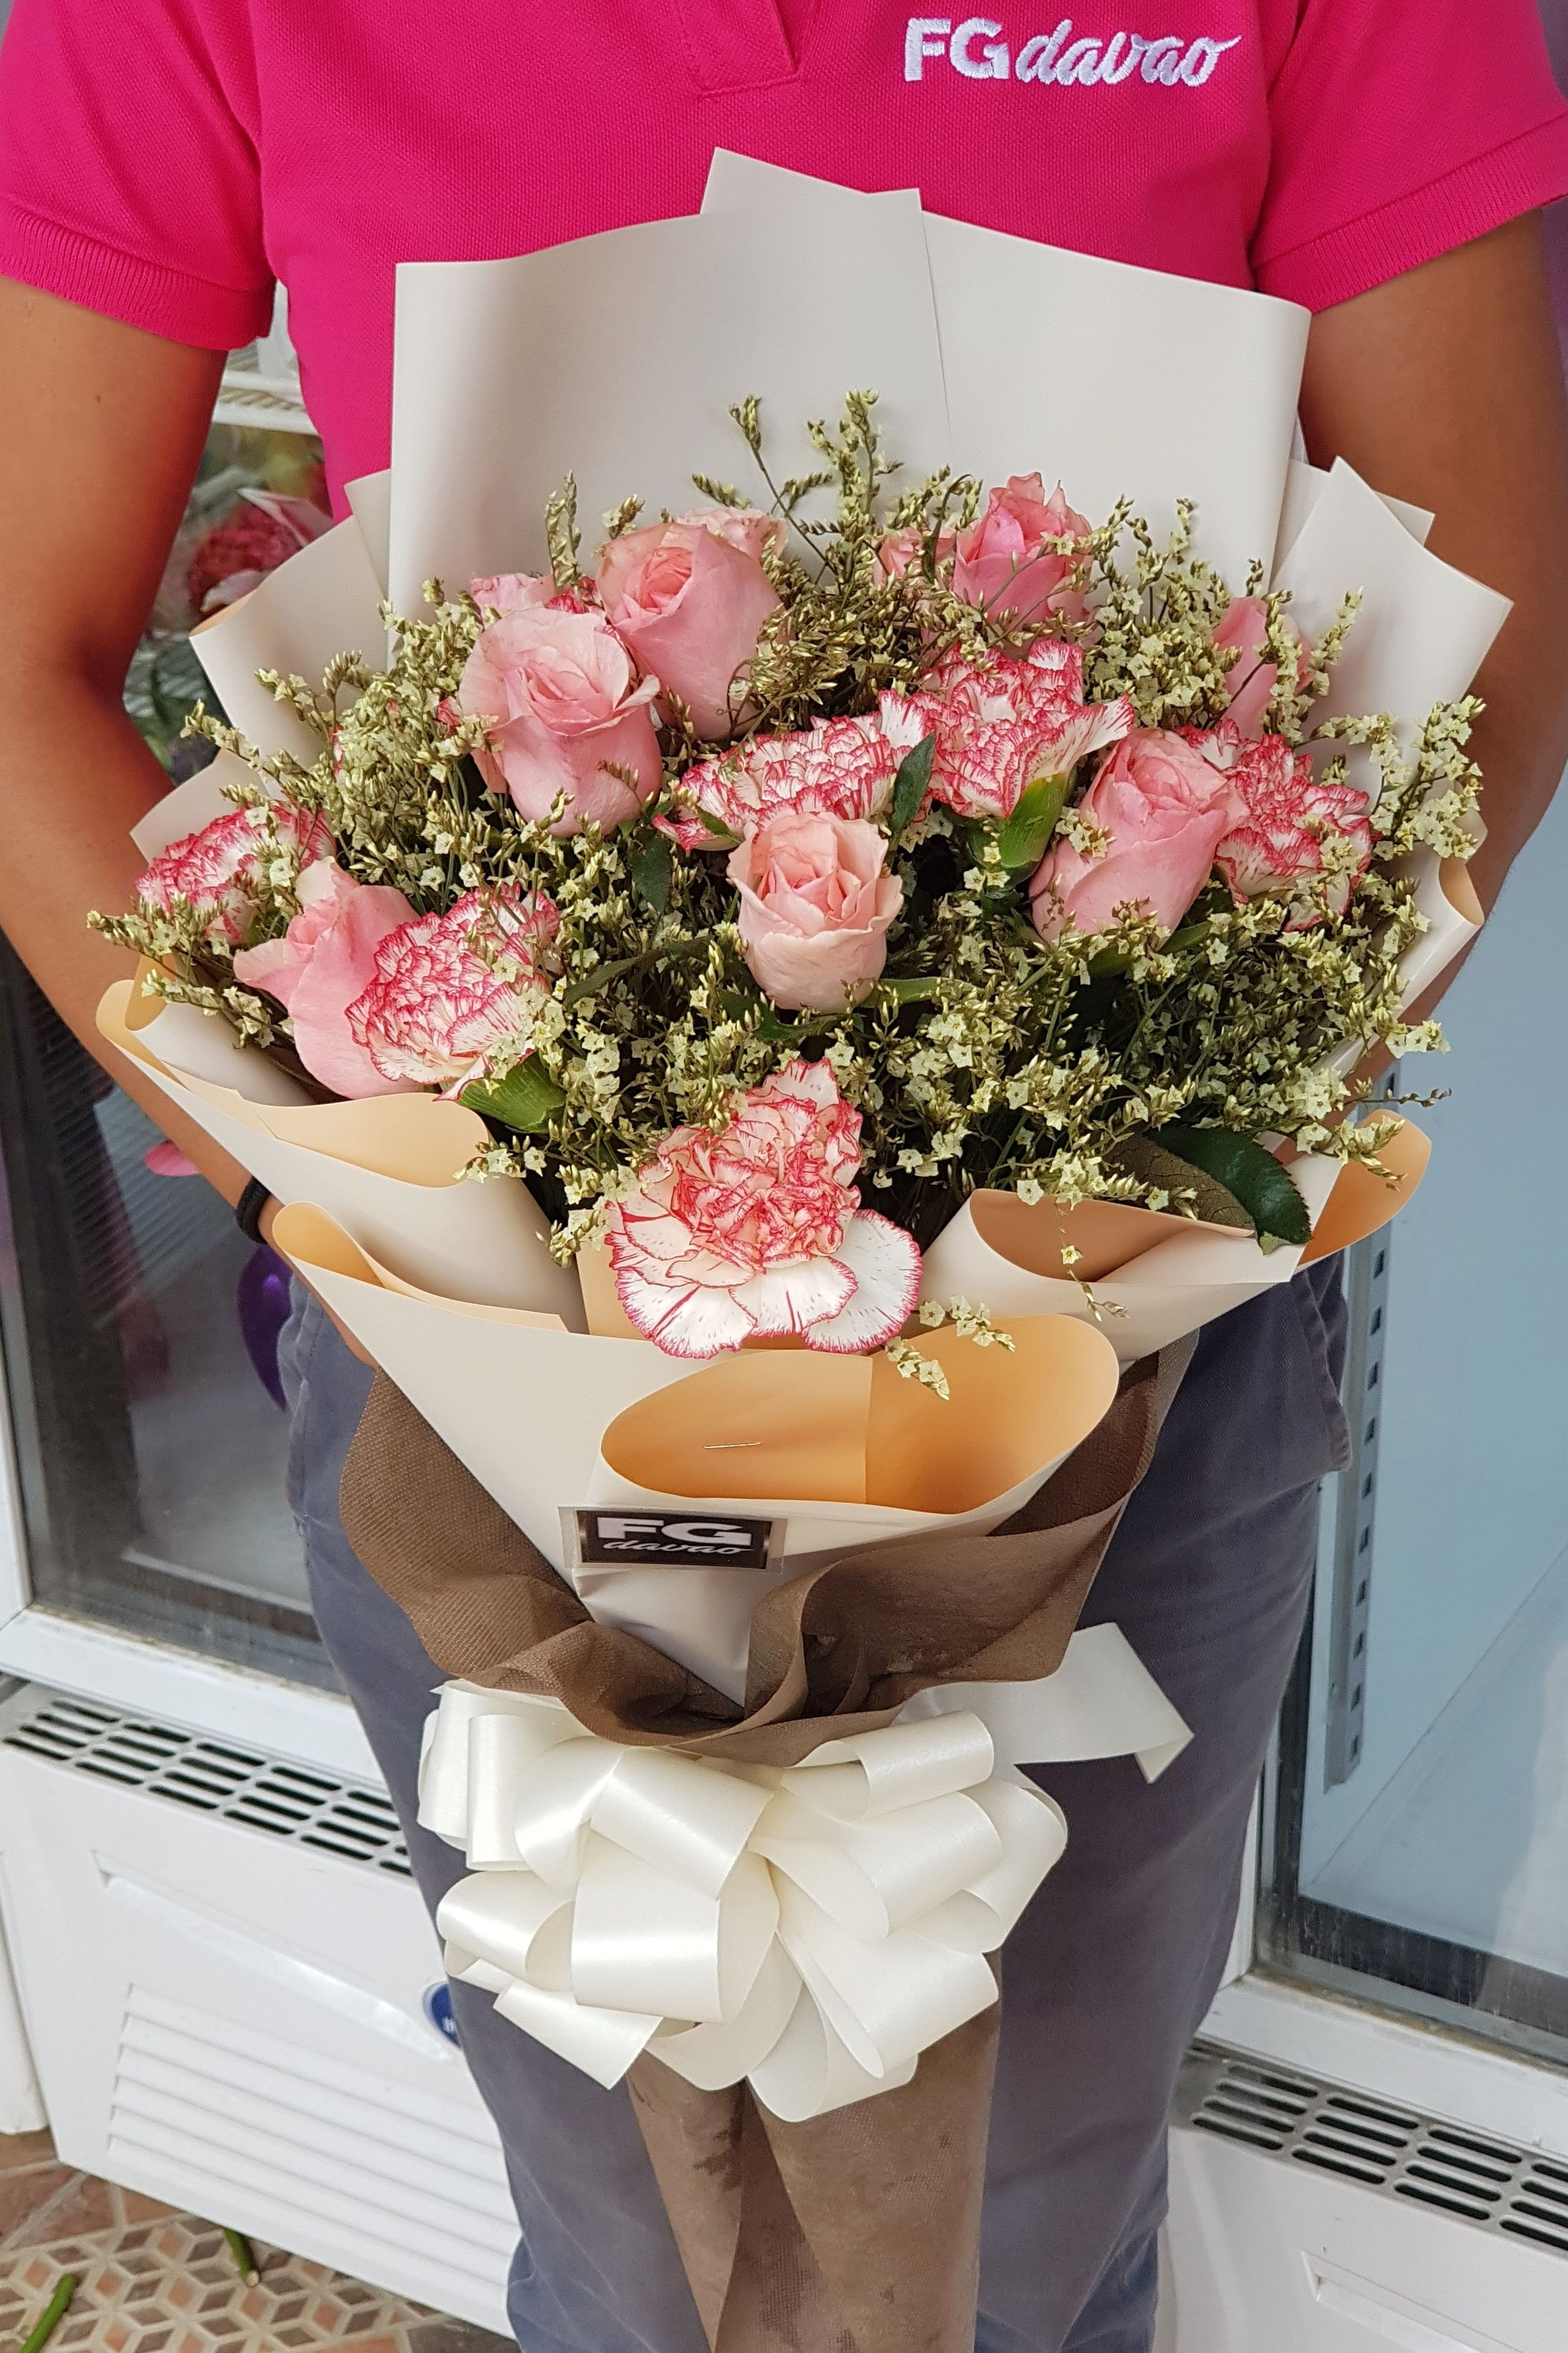 Bouquet of Roses and Carnations Send Flowers to your Loved